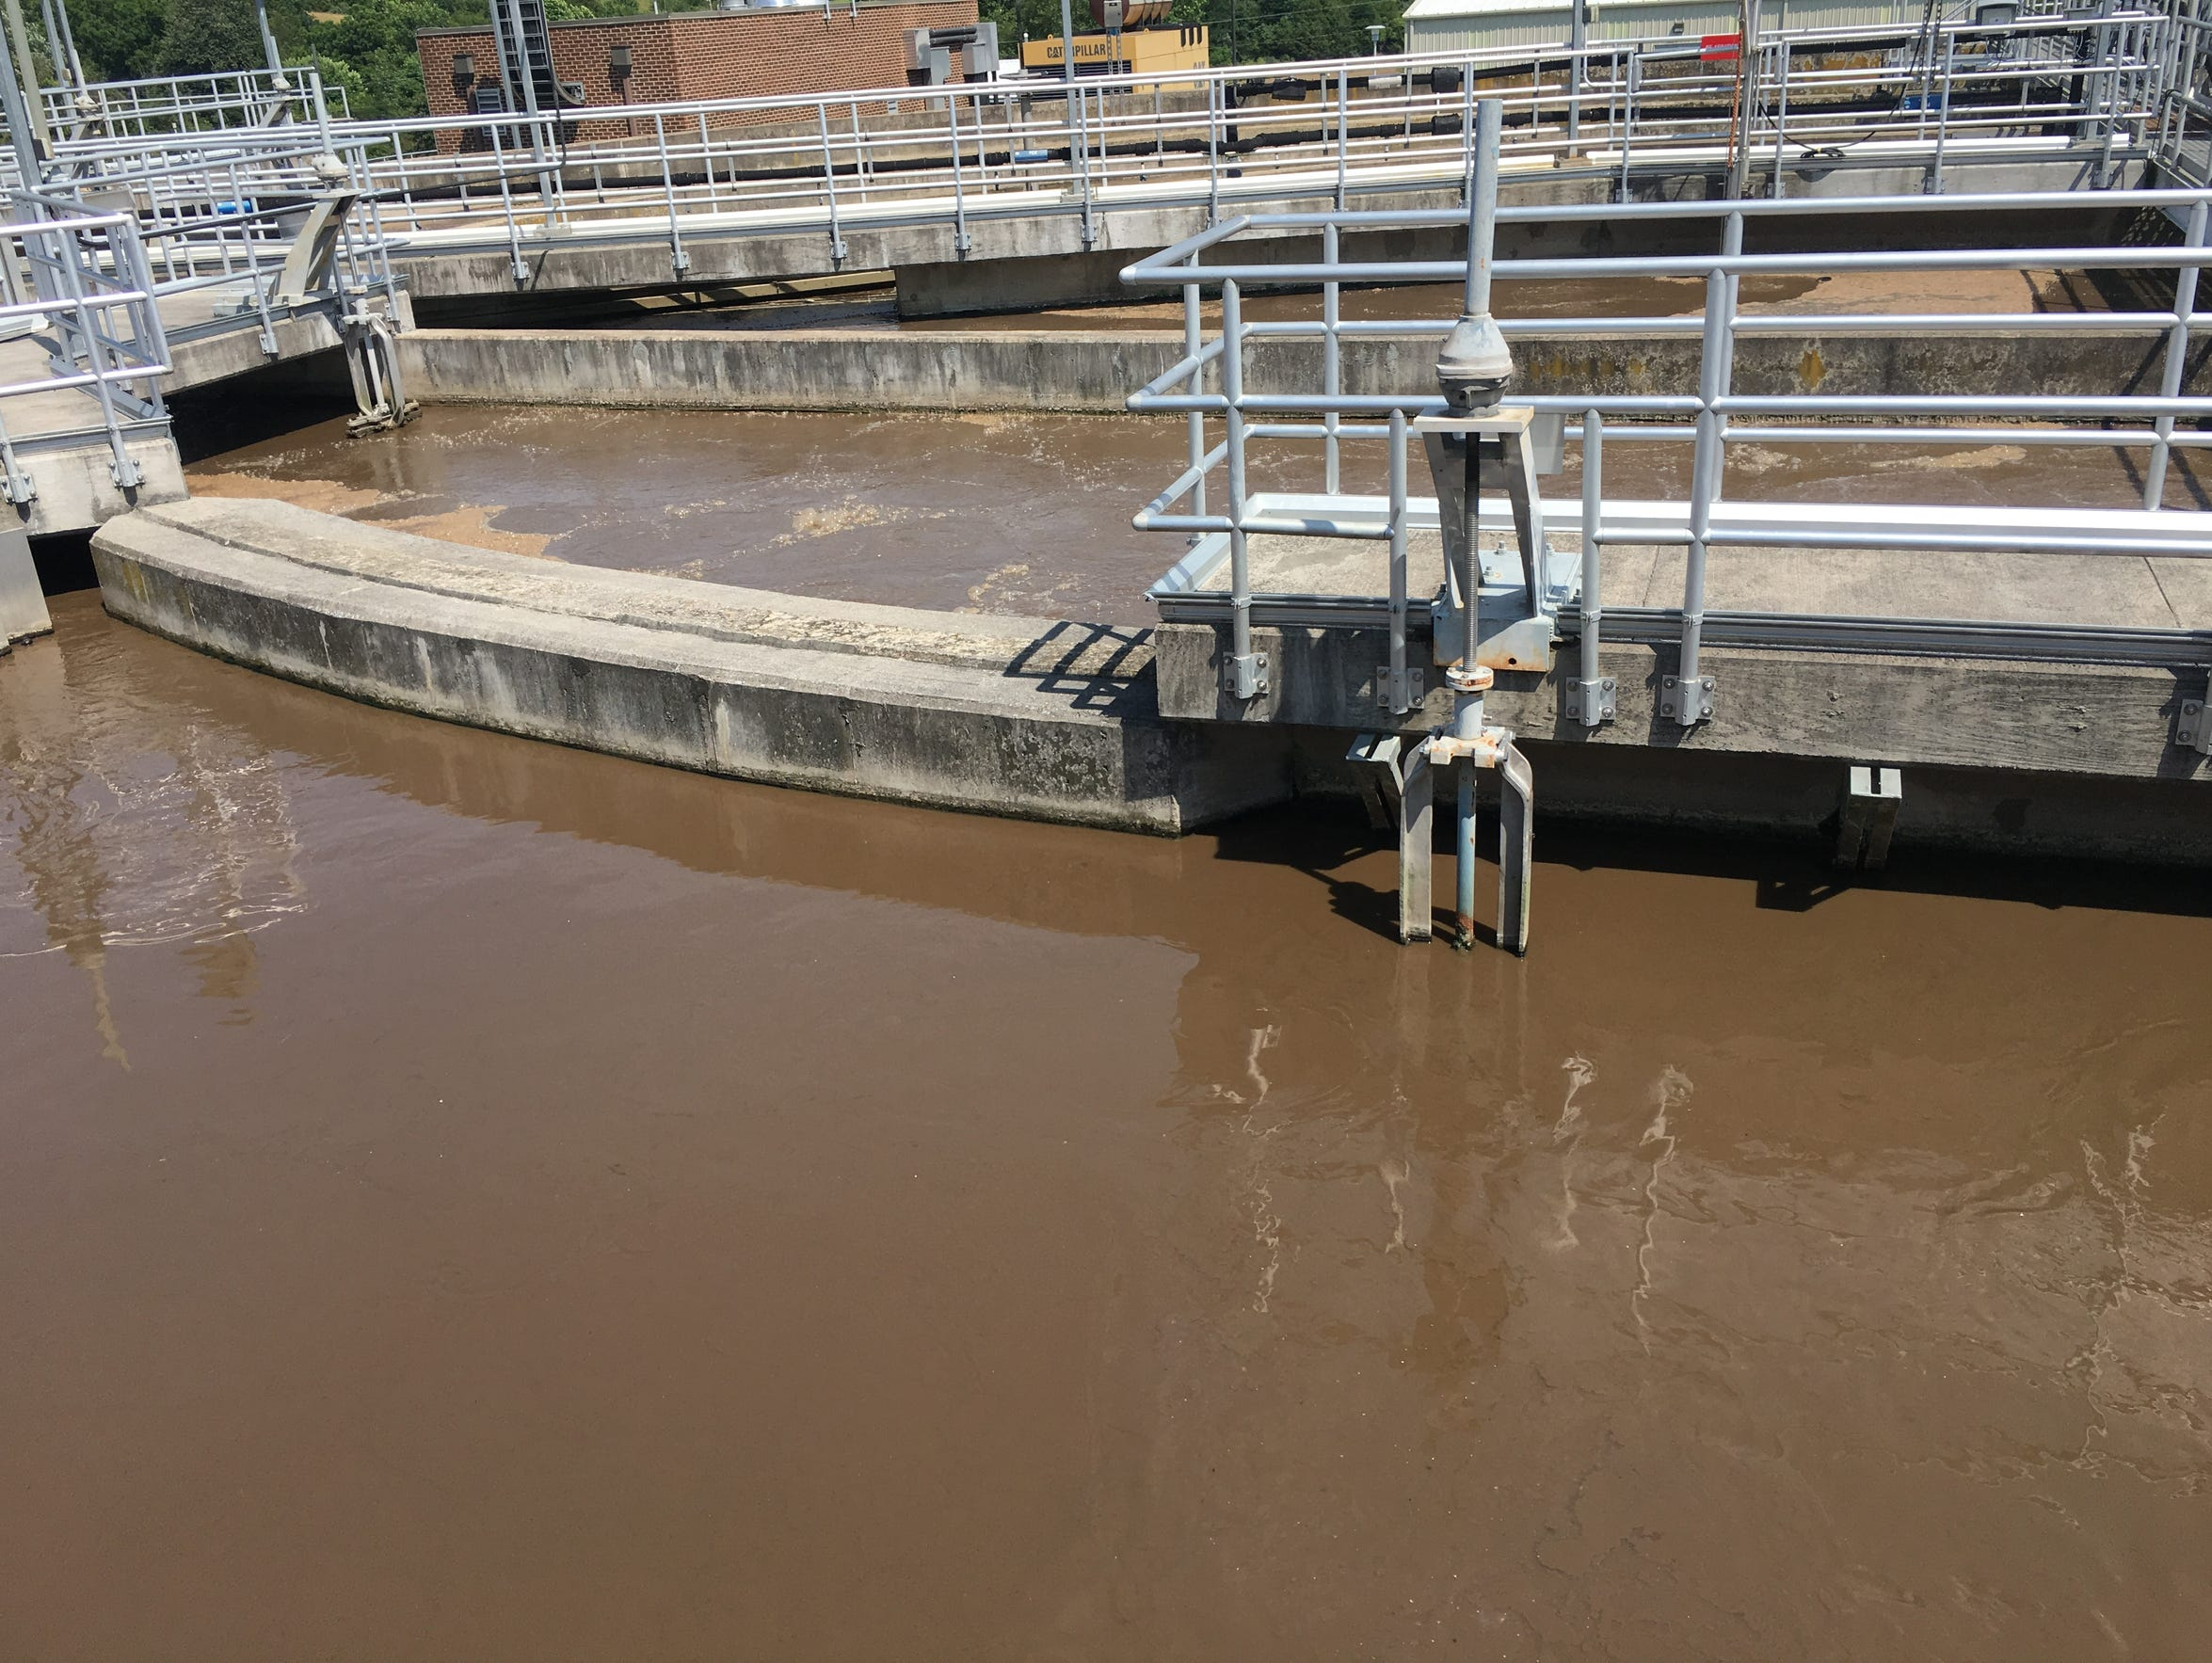 Raw sewage is treated at the Middle River Wastewater